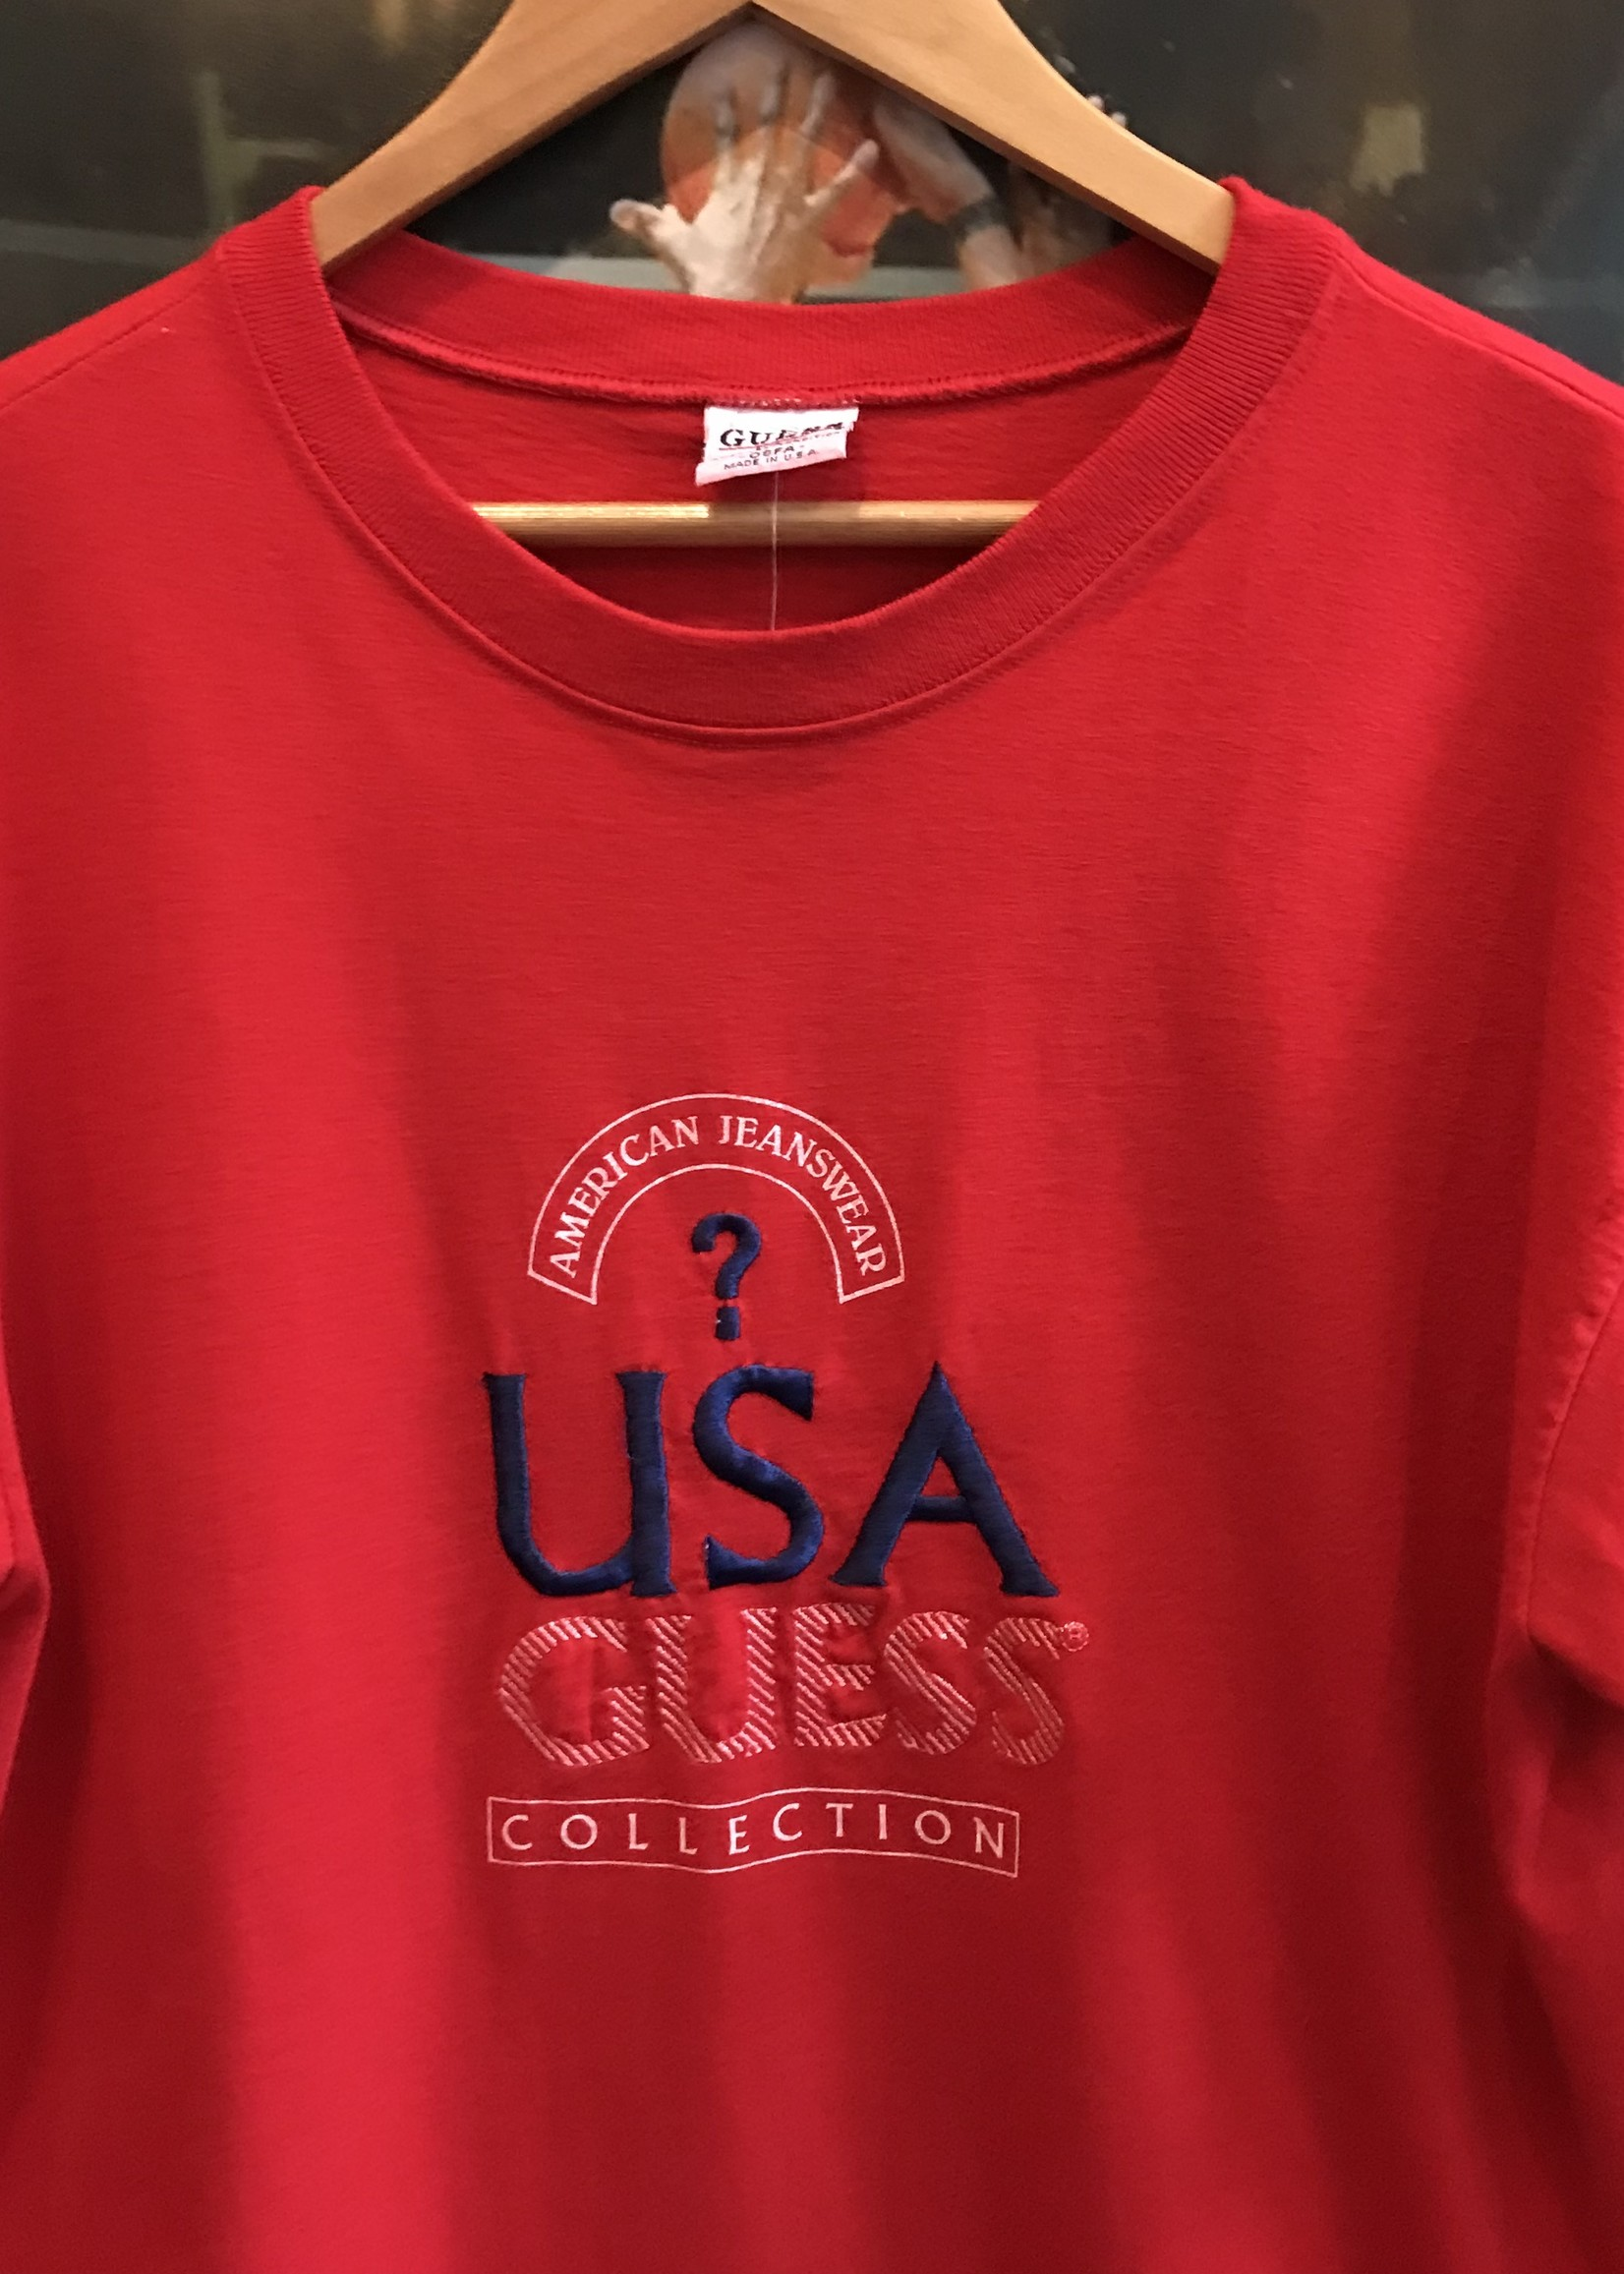 4722guess jeans red tee sz. L